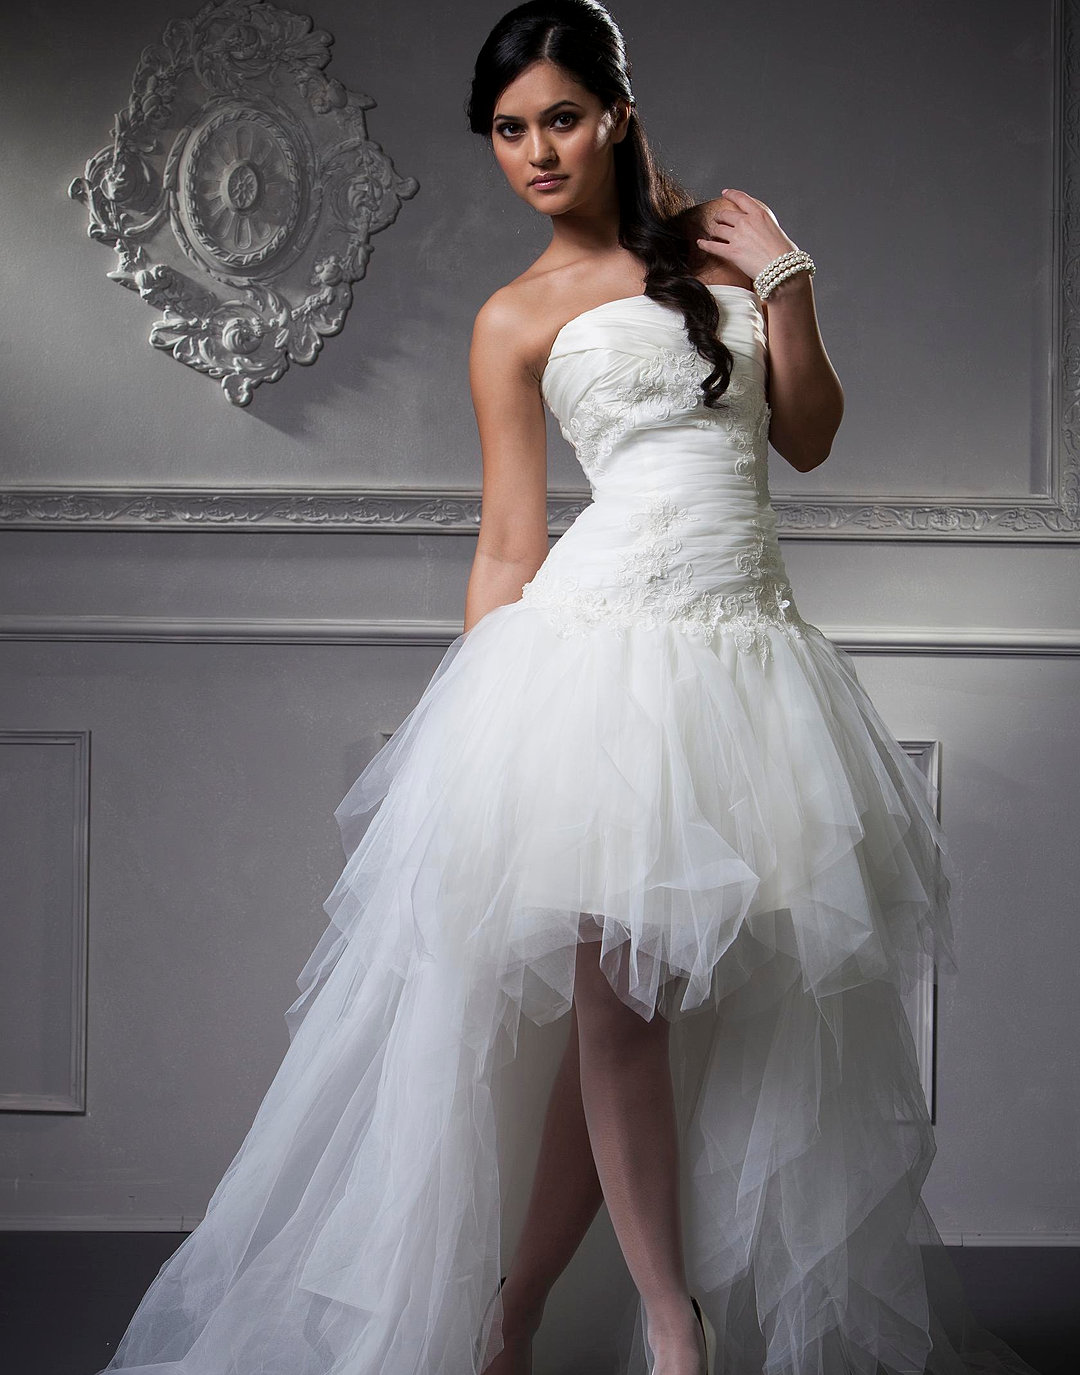 Wedding dresses doncaster wedding dresses asian for Wedding dress shops doncaster